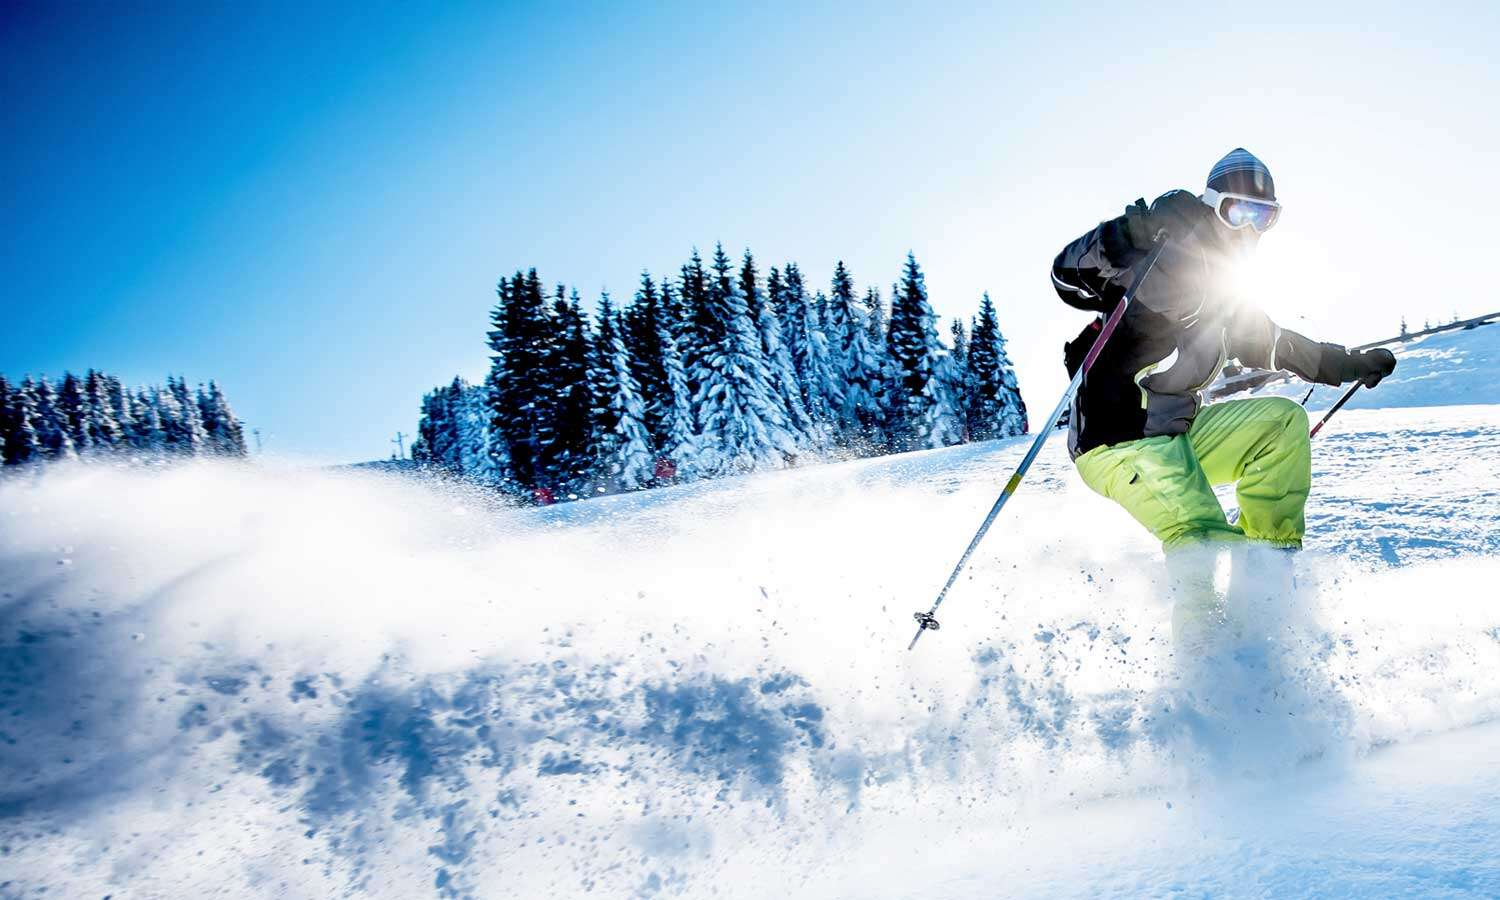 Skiing in Banff: What you need to know